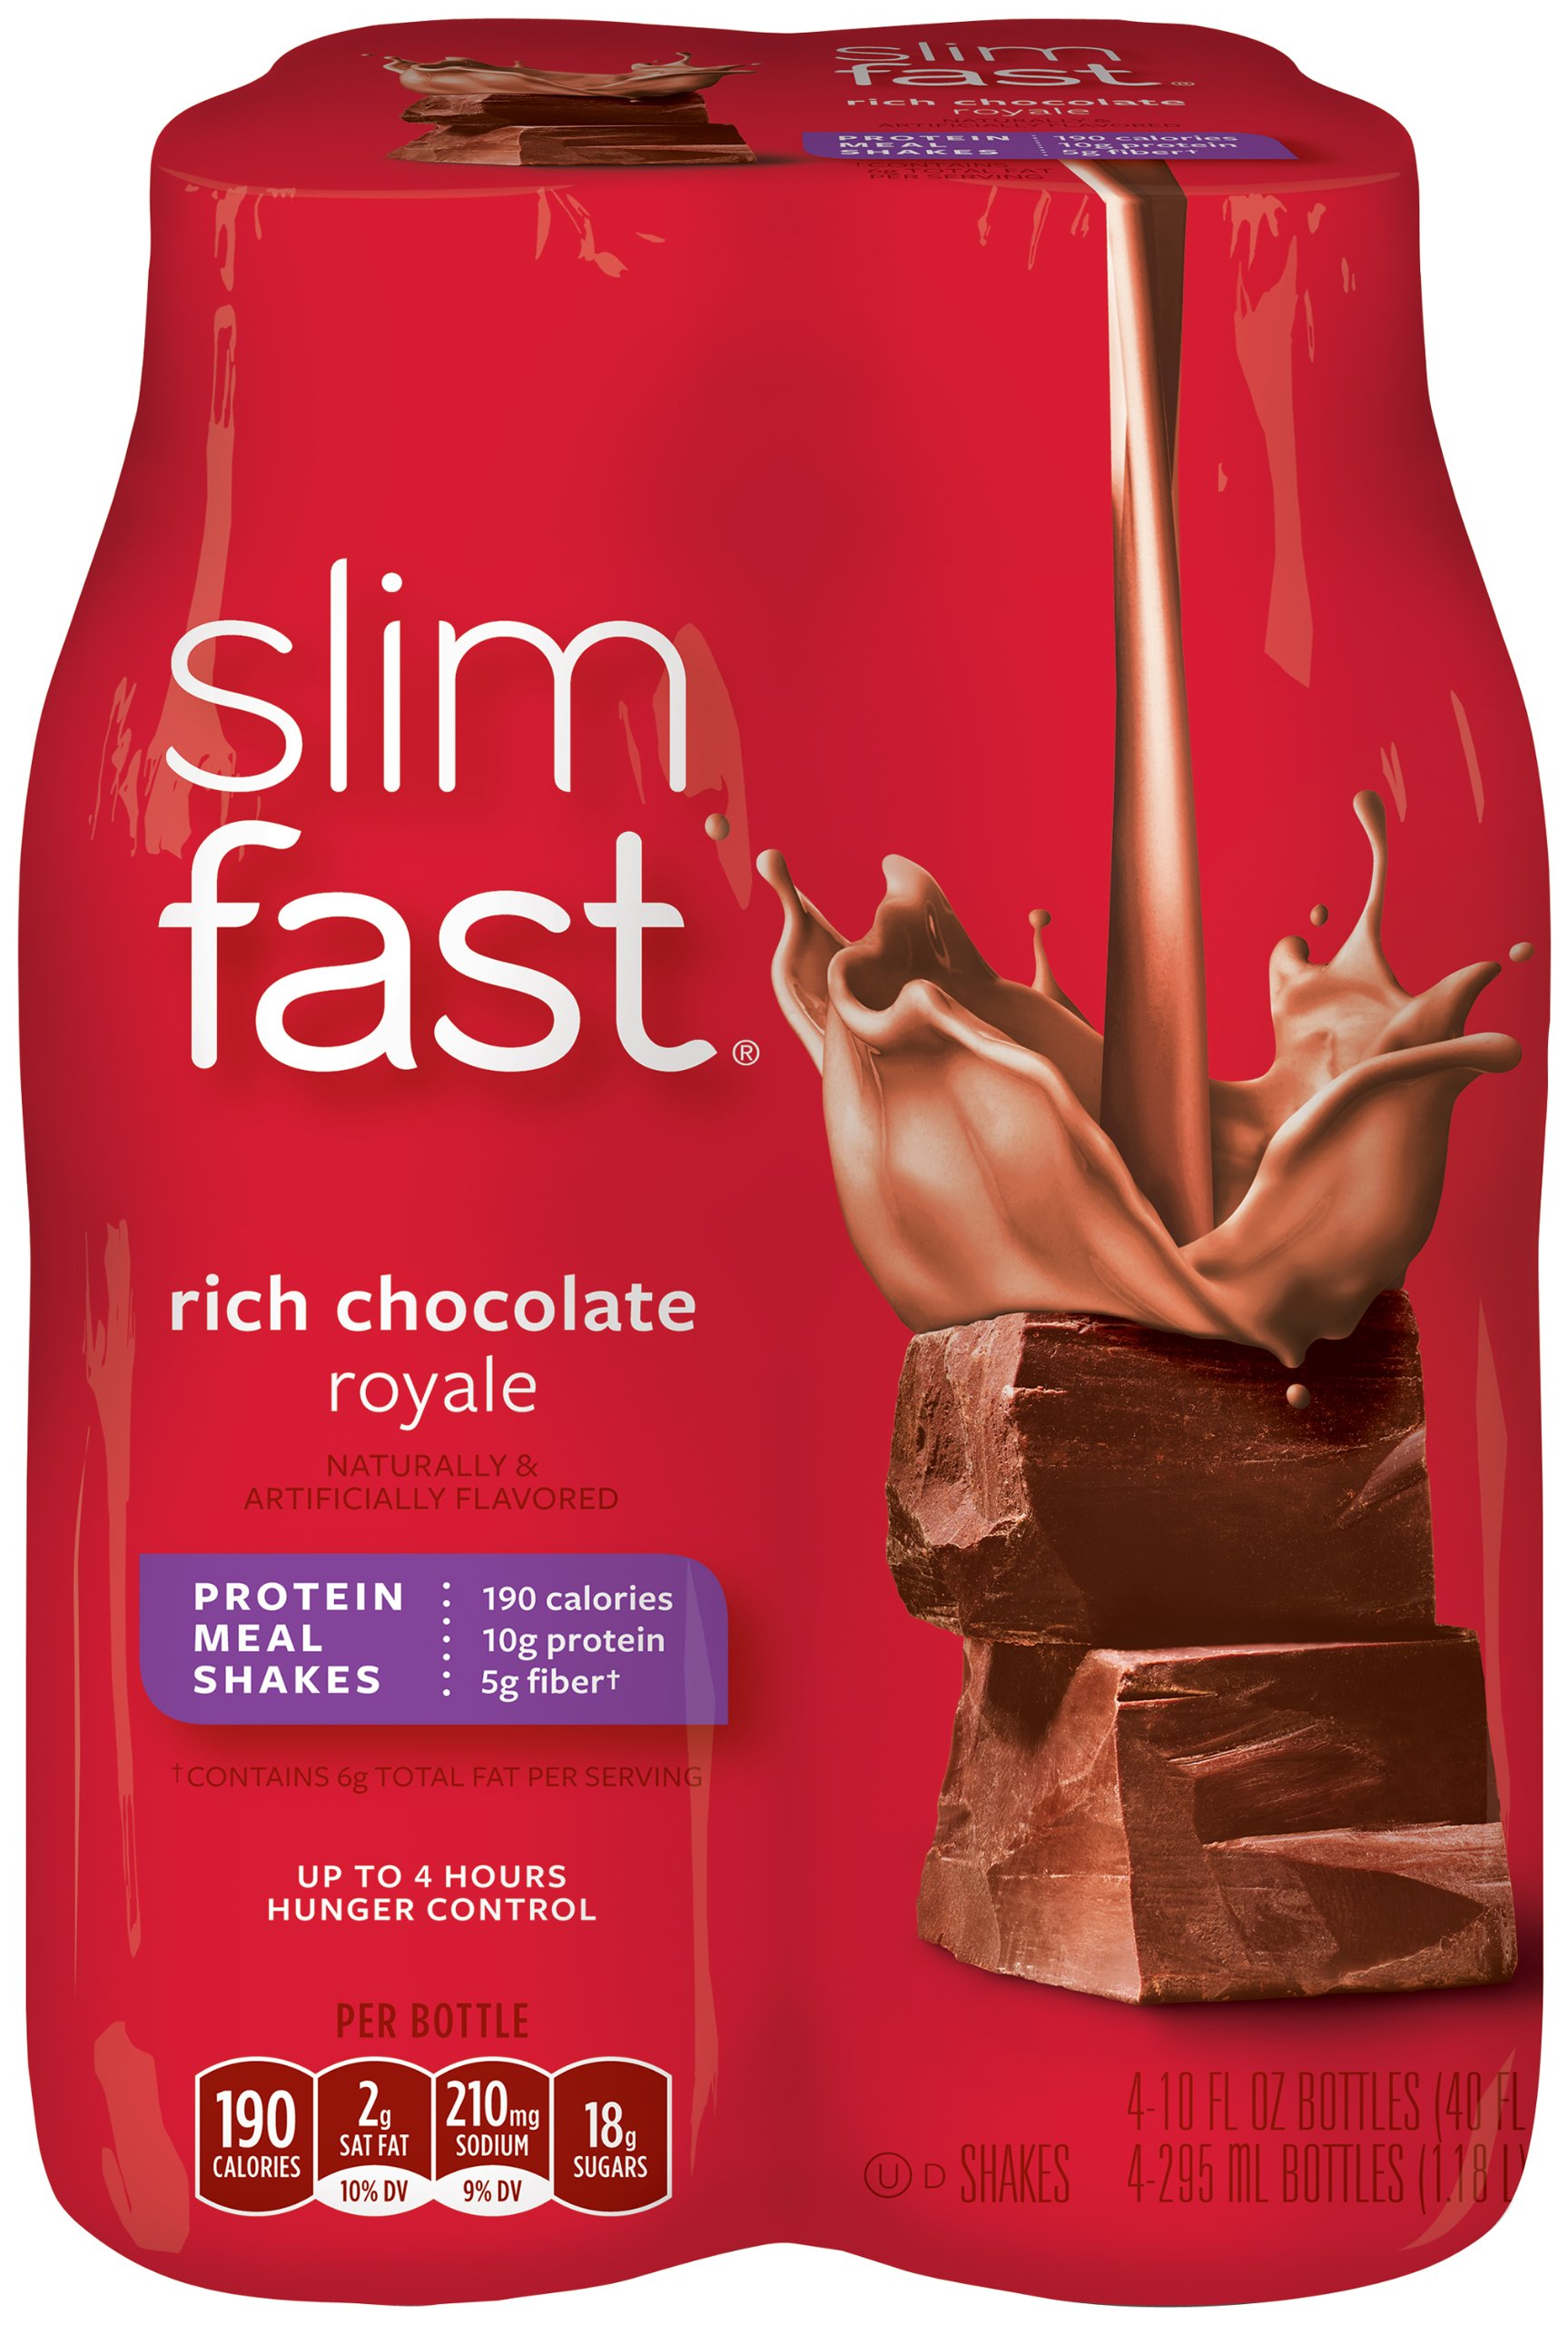 Slim Fast 3-2-1 Rich Chocolate Royale Shake, 10 OZ(Case Contains: 24 Bottles) by SlimFast